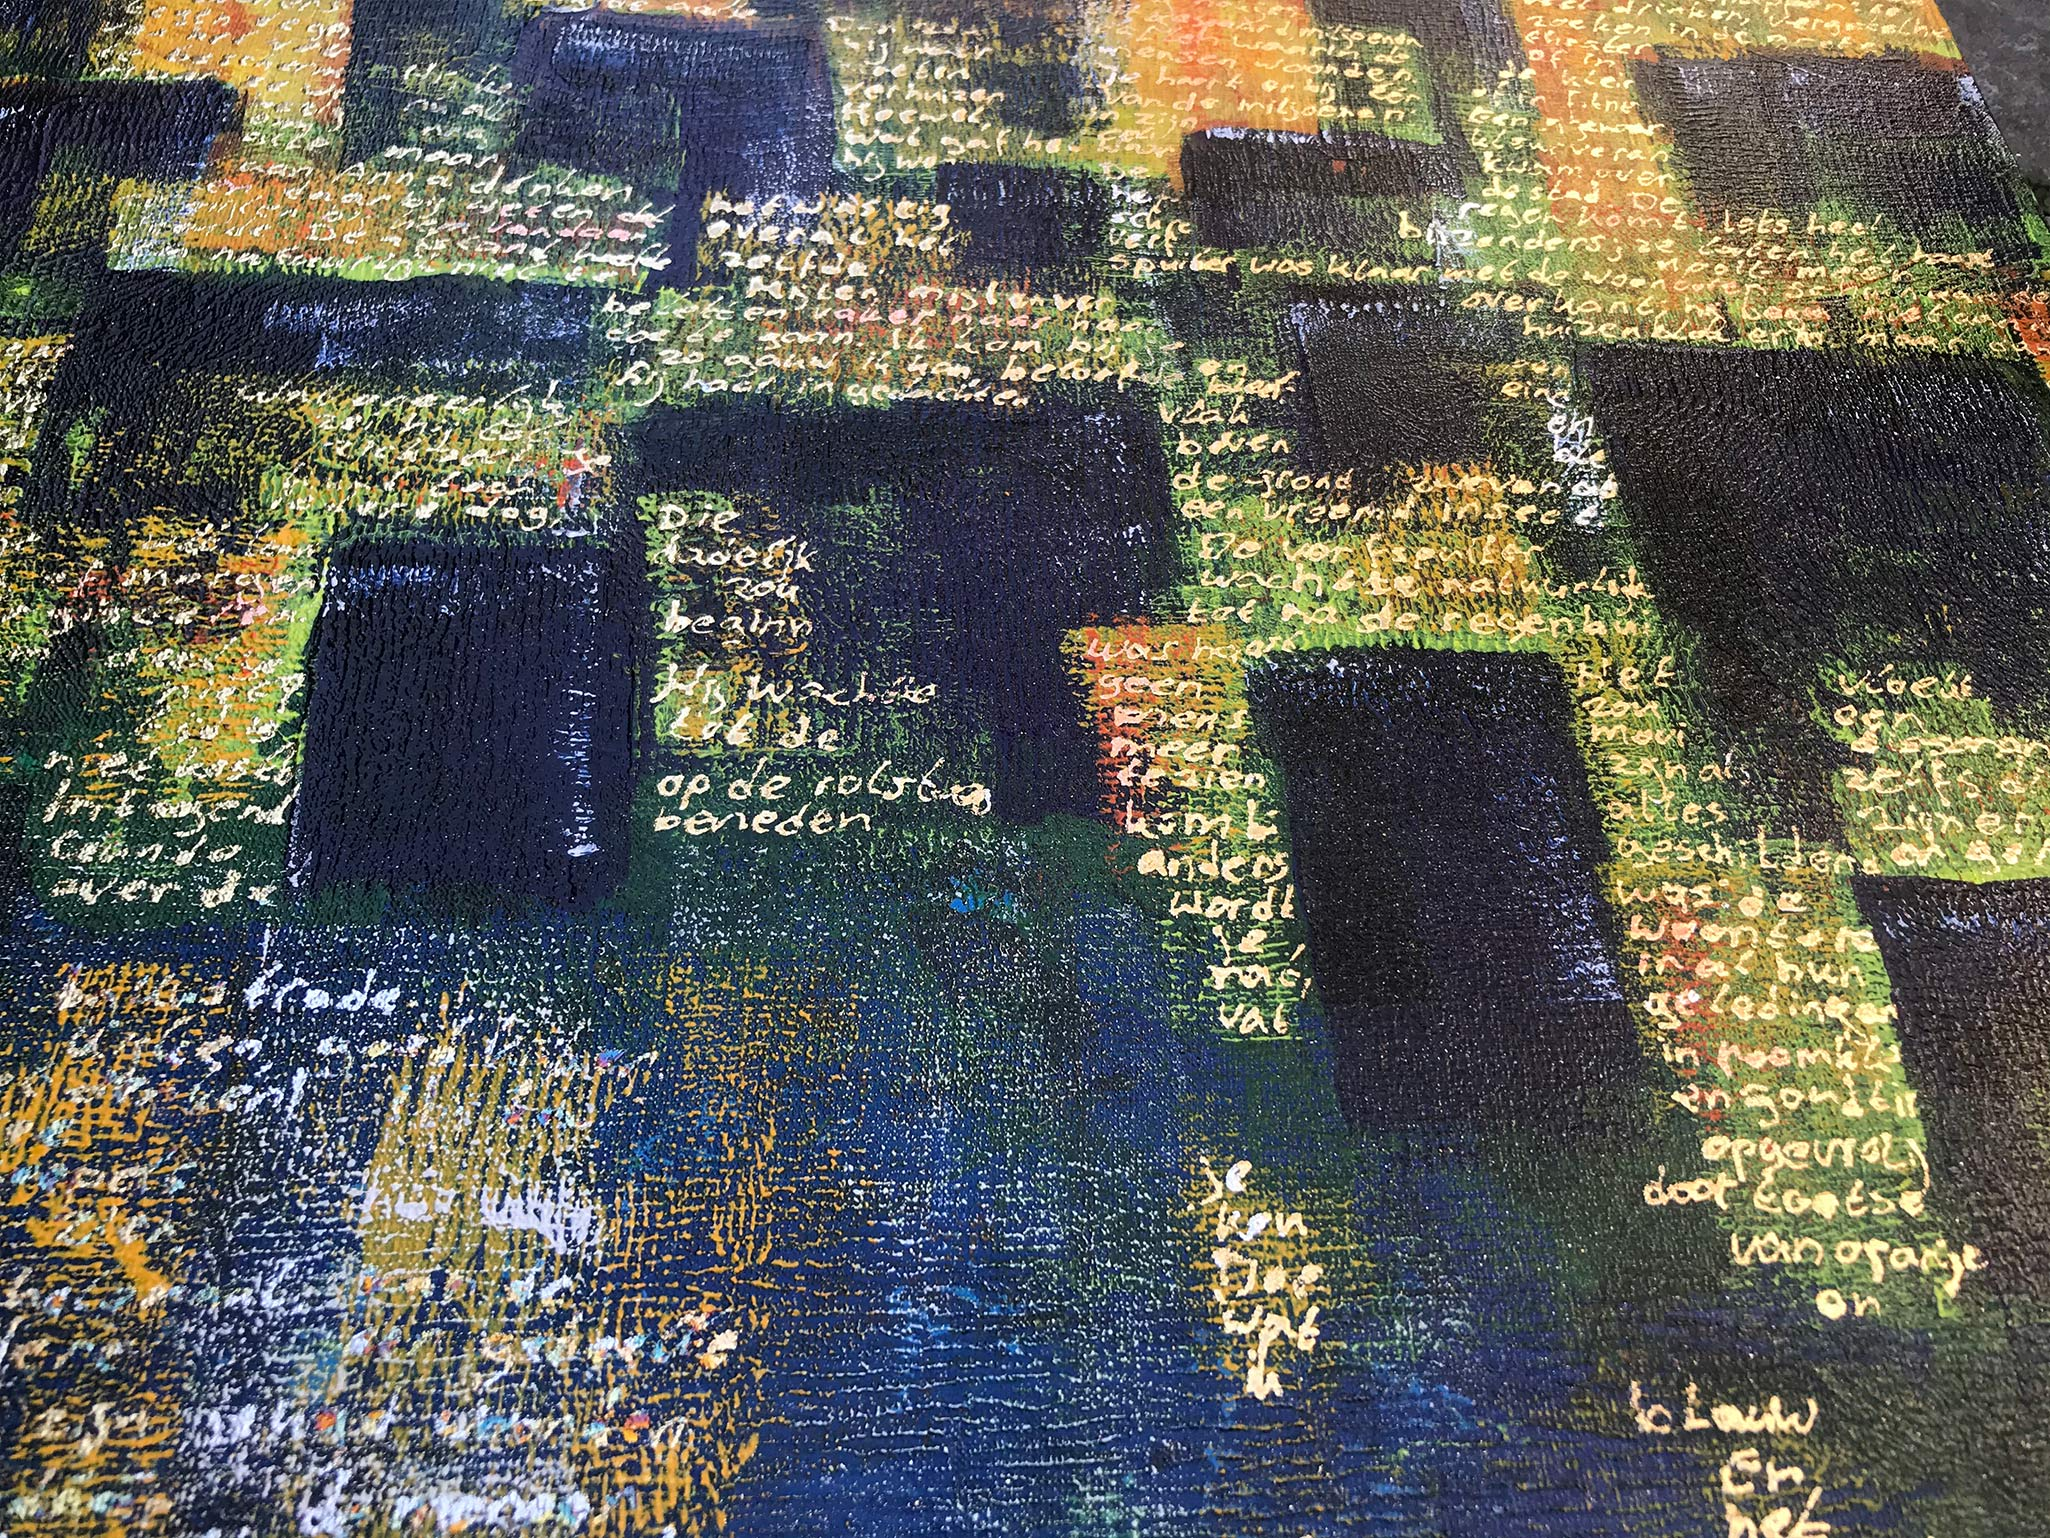 2 MAAL EE | Elise Eekhout | Corona Stories | Tranquil City 01 | detail